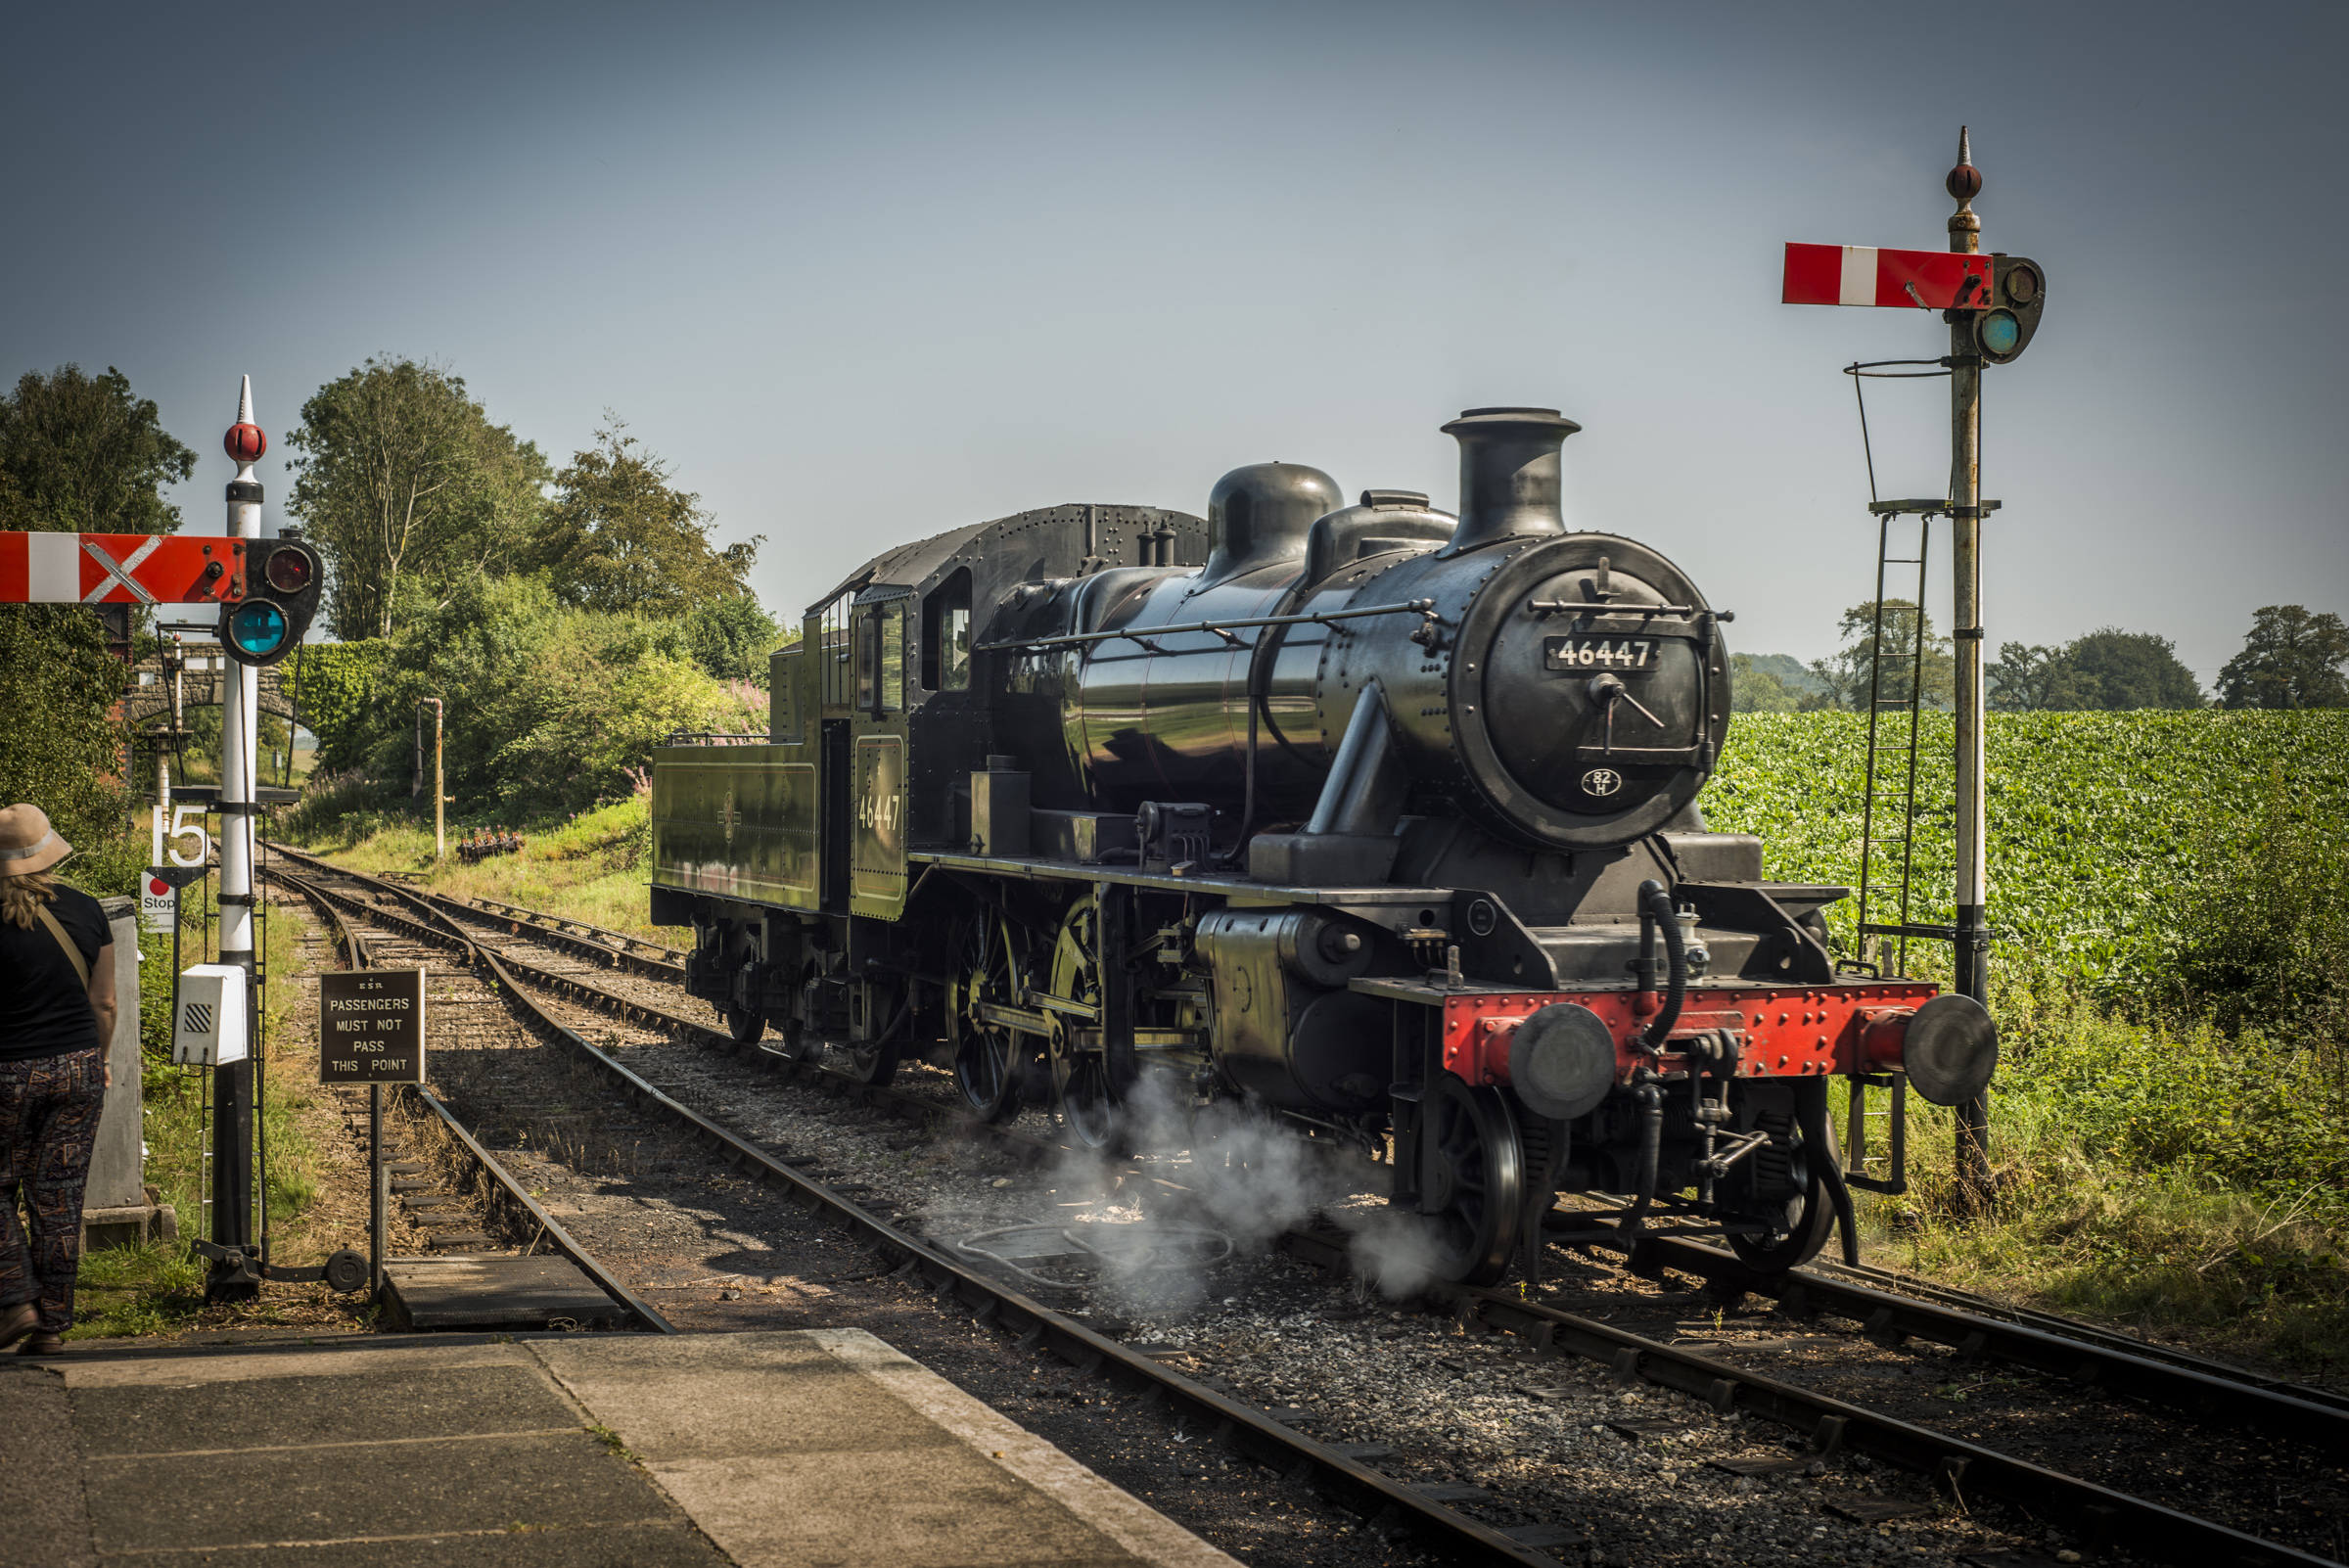 A steam train pulls into Cranmore Station on the East Somerset Line